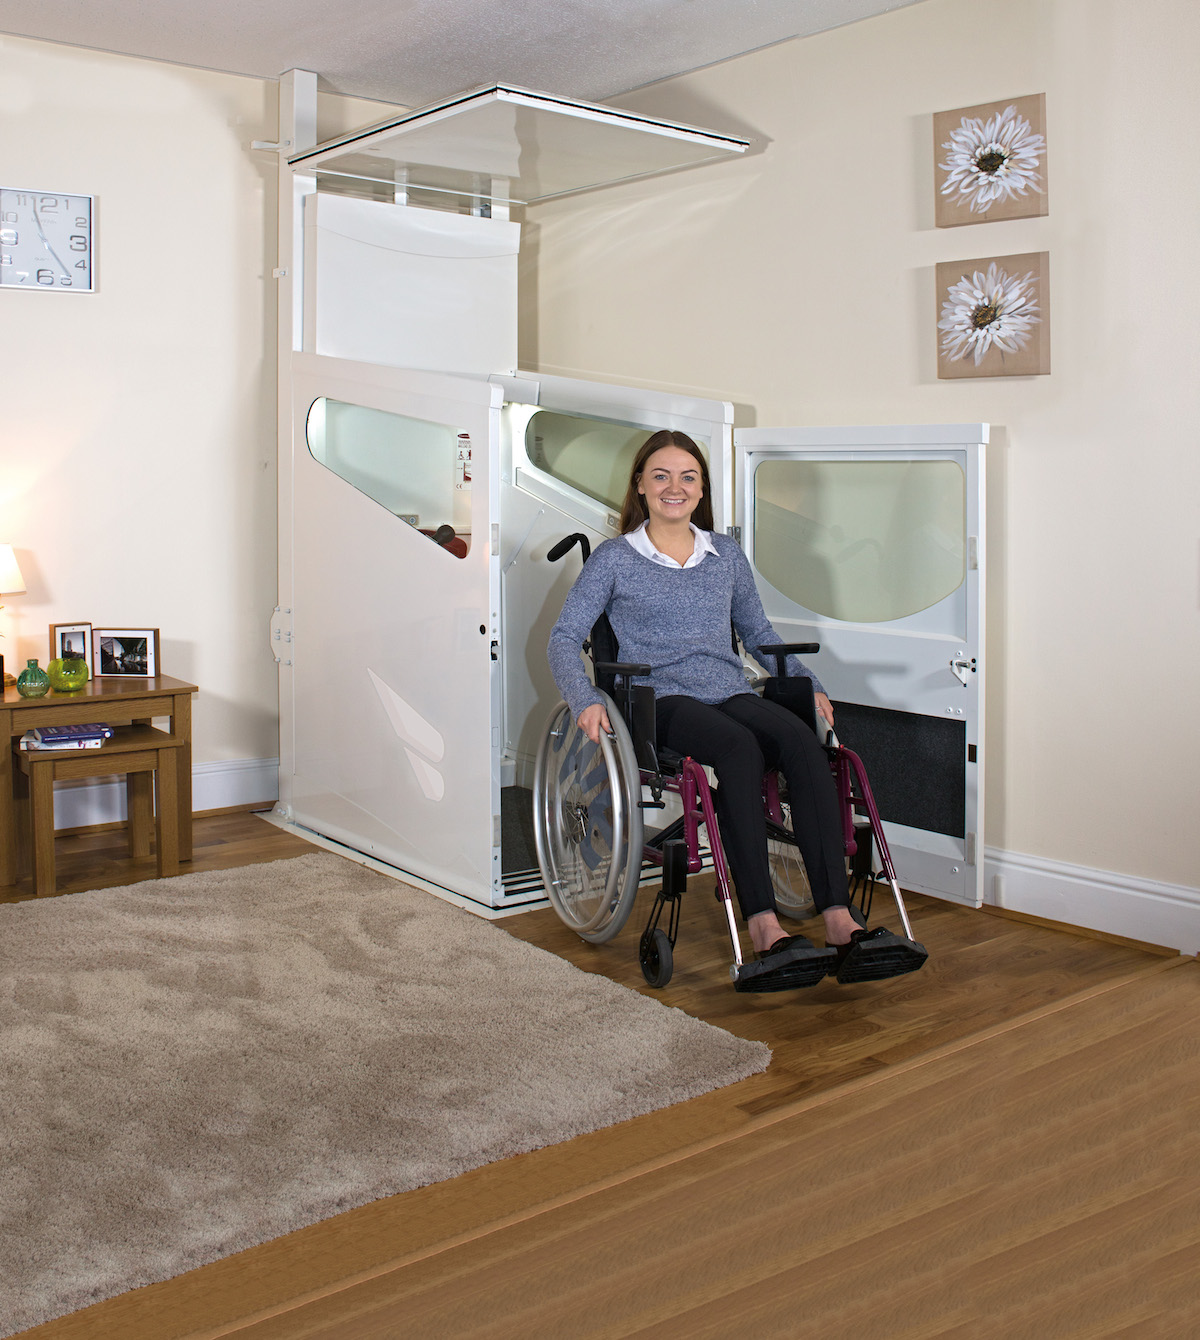 Terry Lifts | Installing lifts to make homes more accessible